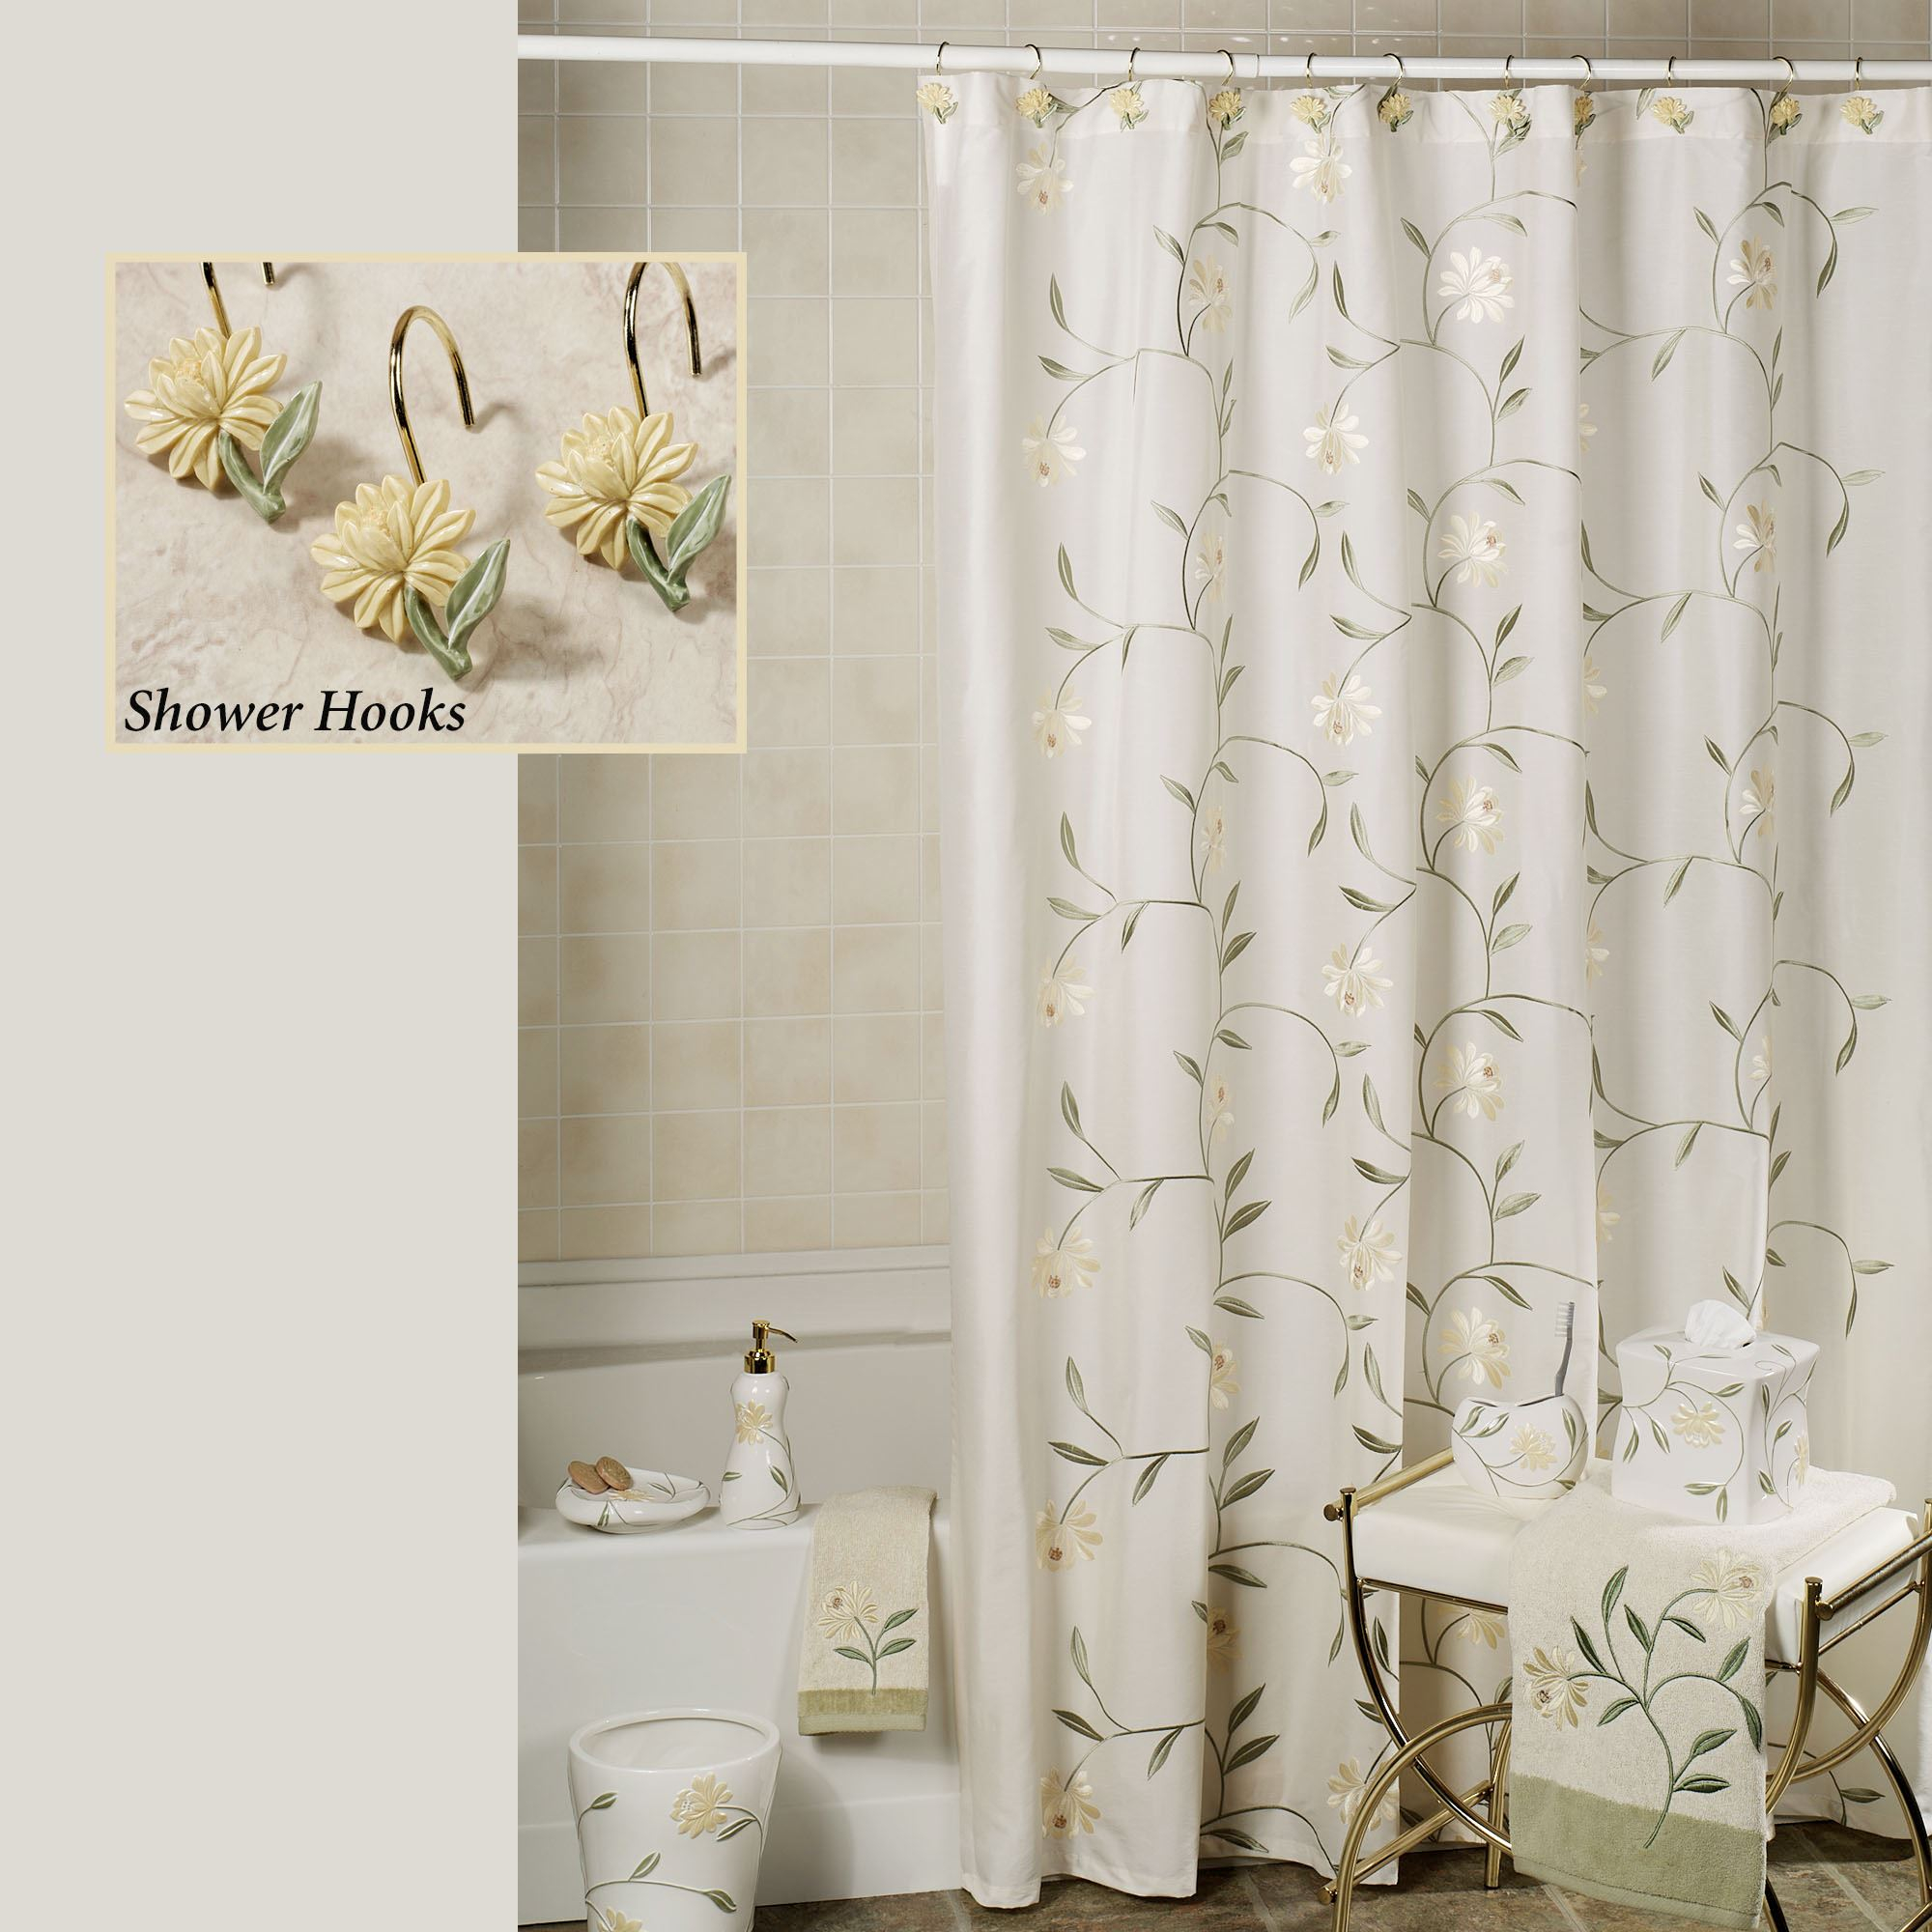 Bath Shower Curtains And Shower Curtain Hooks Touch Of Class Pertaining To  Dimensions 2000 X 2000